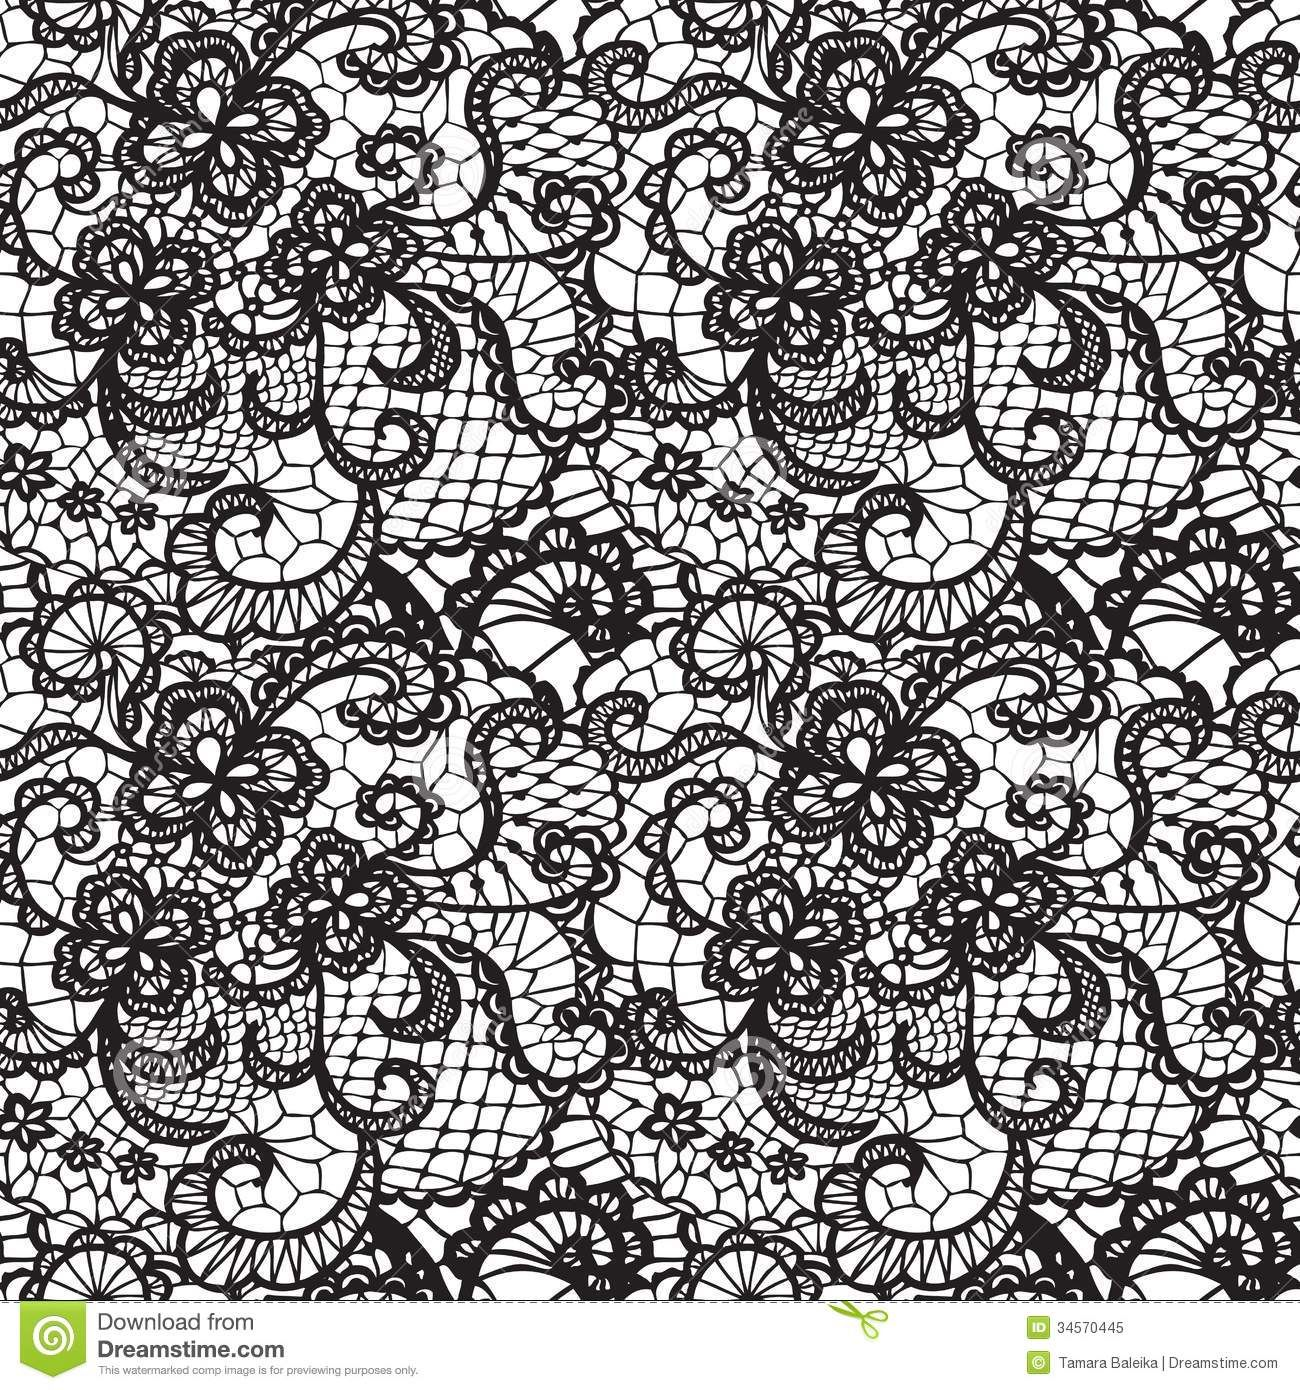 lace background images white lace background lace black seamless pattern with 5402